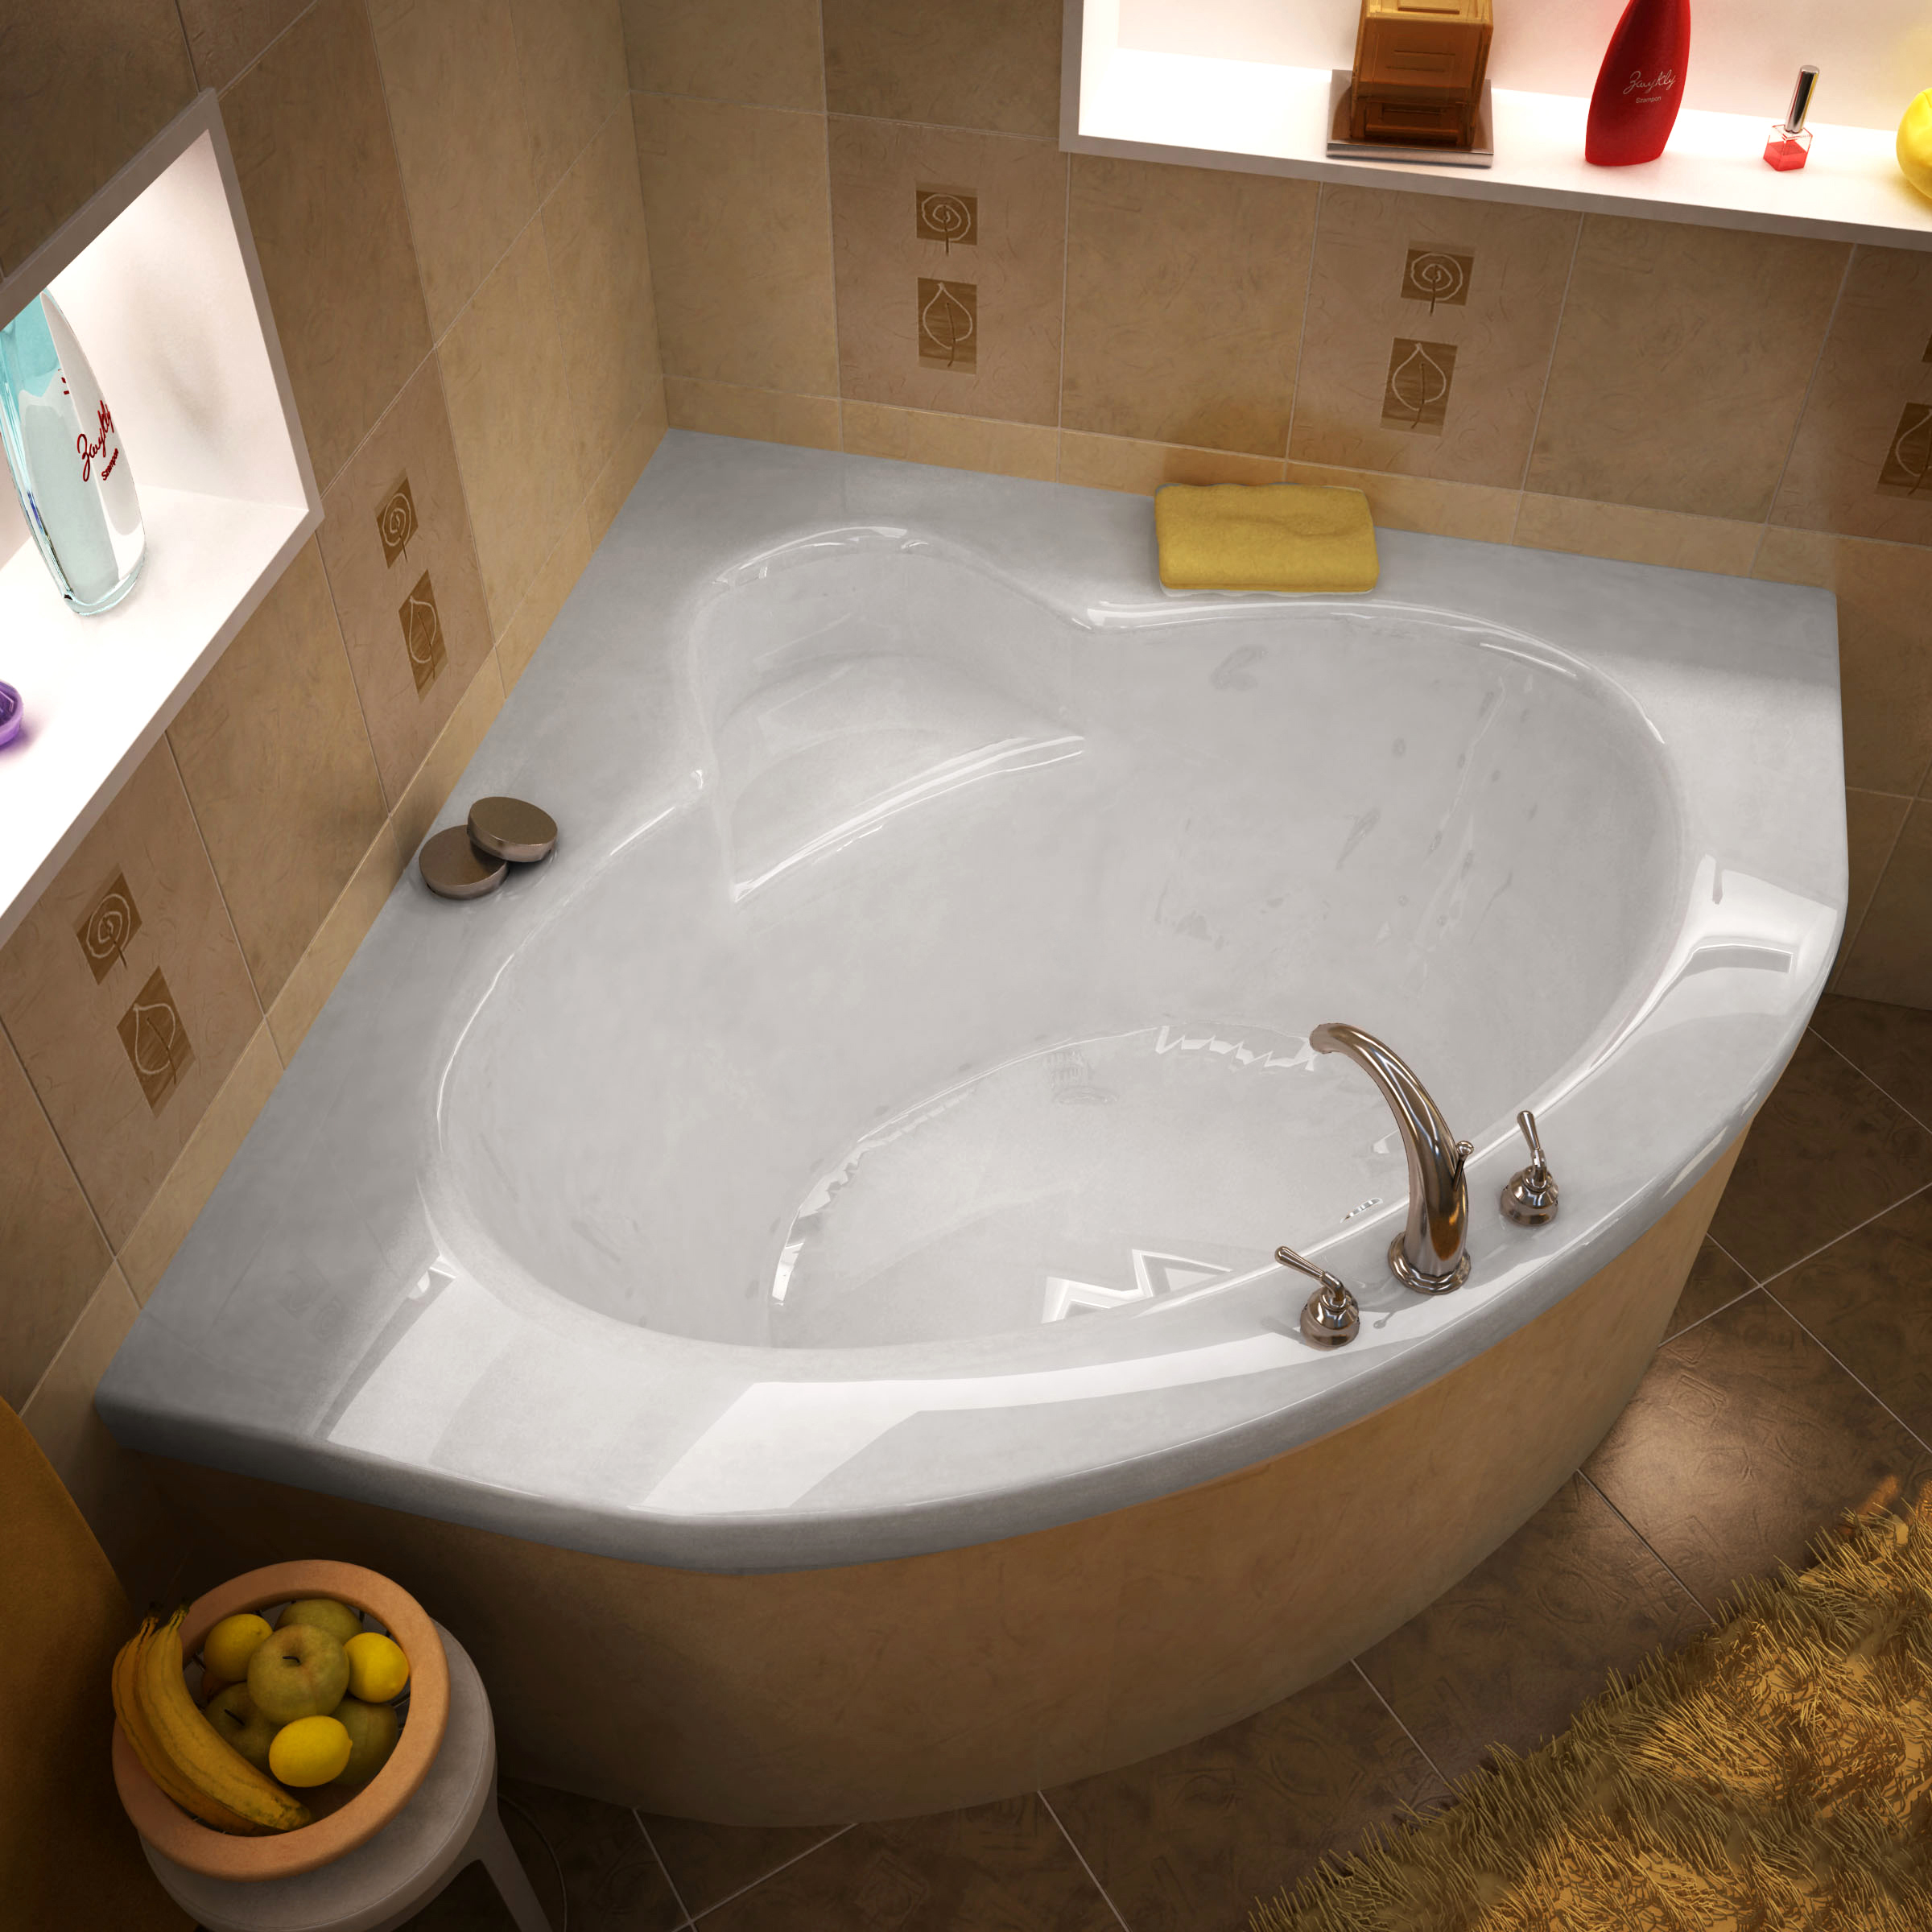 Venzi Esta 60 x 60 Corner Bathtub with Center Drain